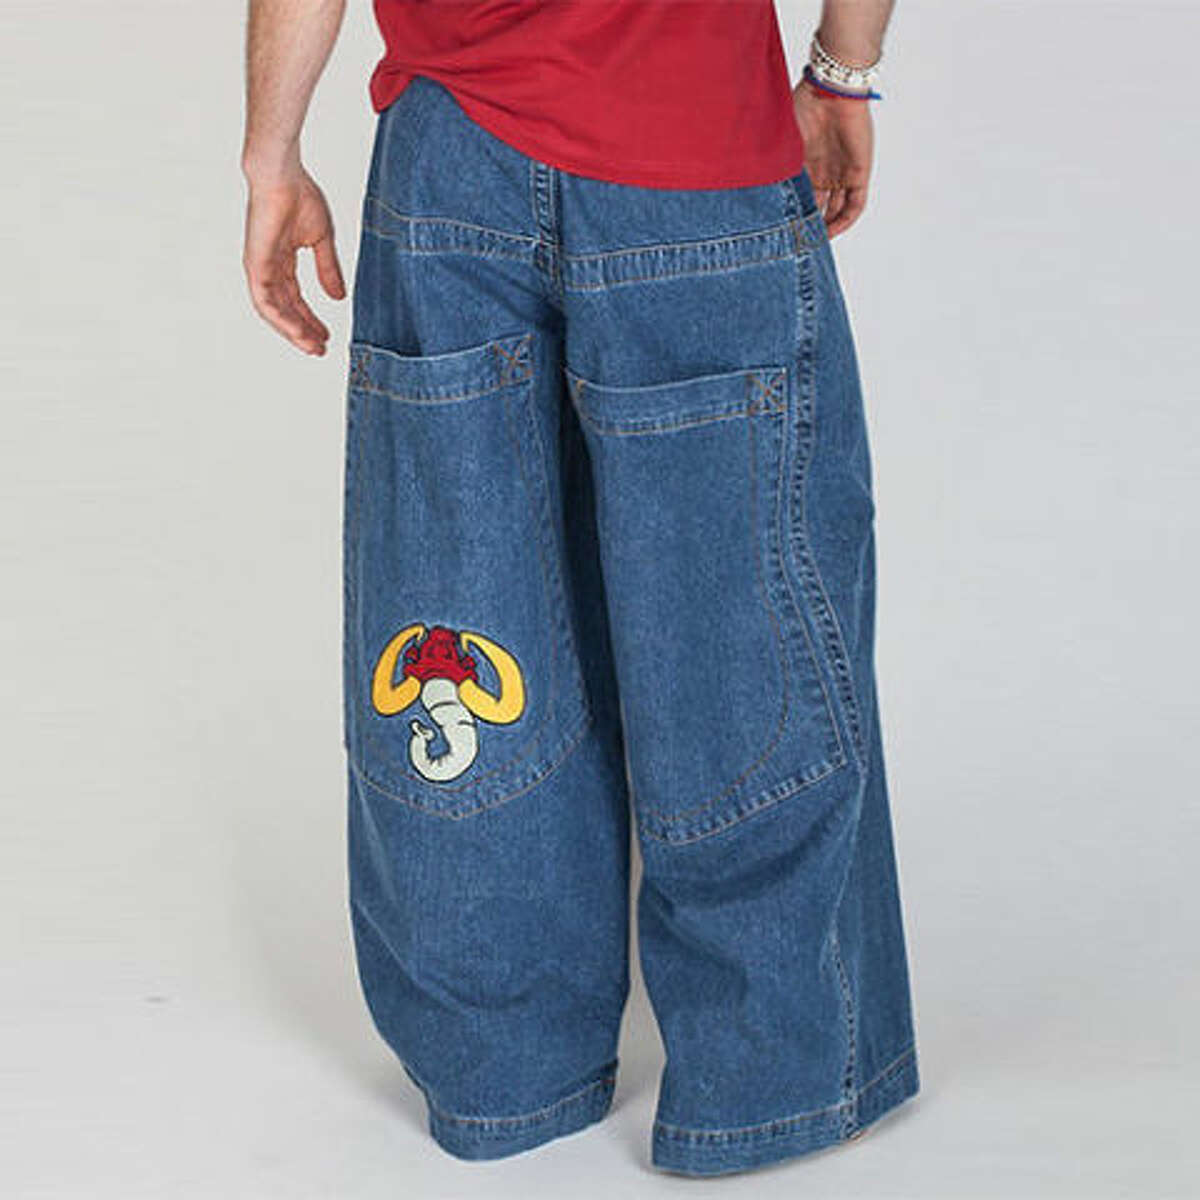 JNCO wide-legged jeans were all the rage in the 1990s and made a comeback in 2017. Now, the L.A.-based company is closing.